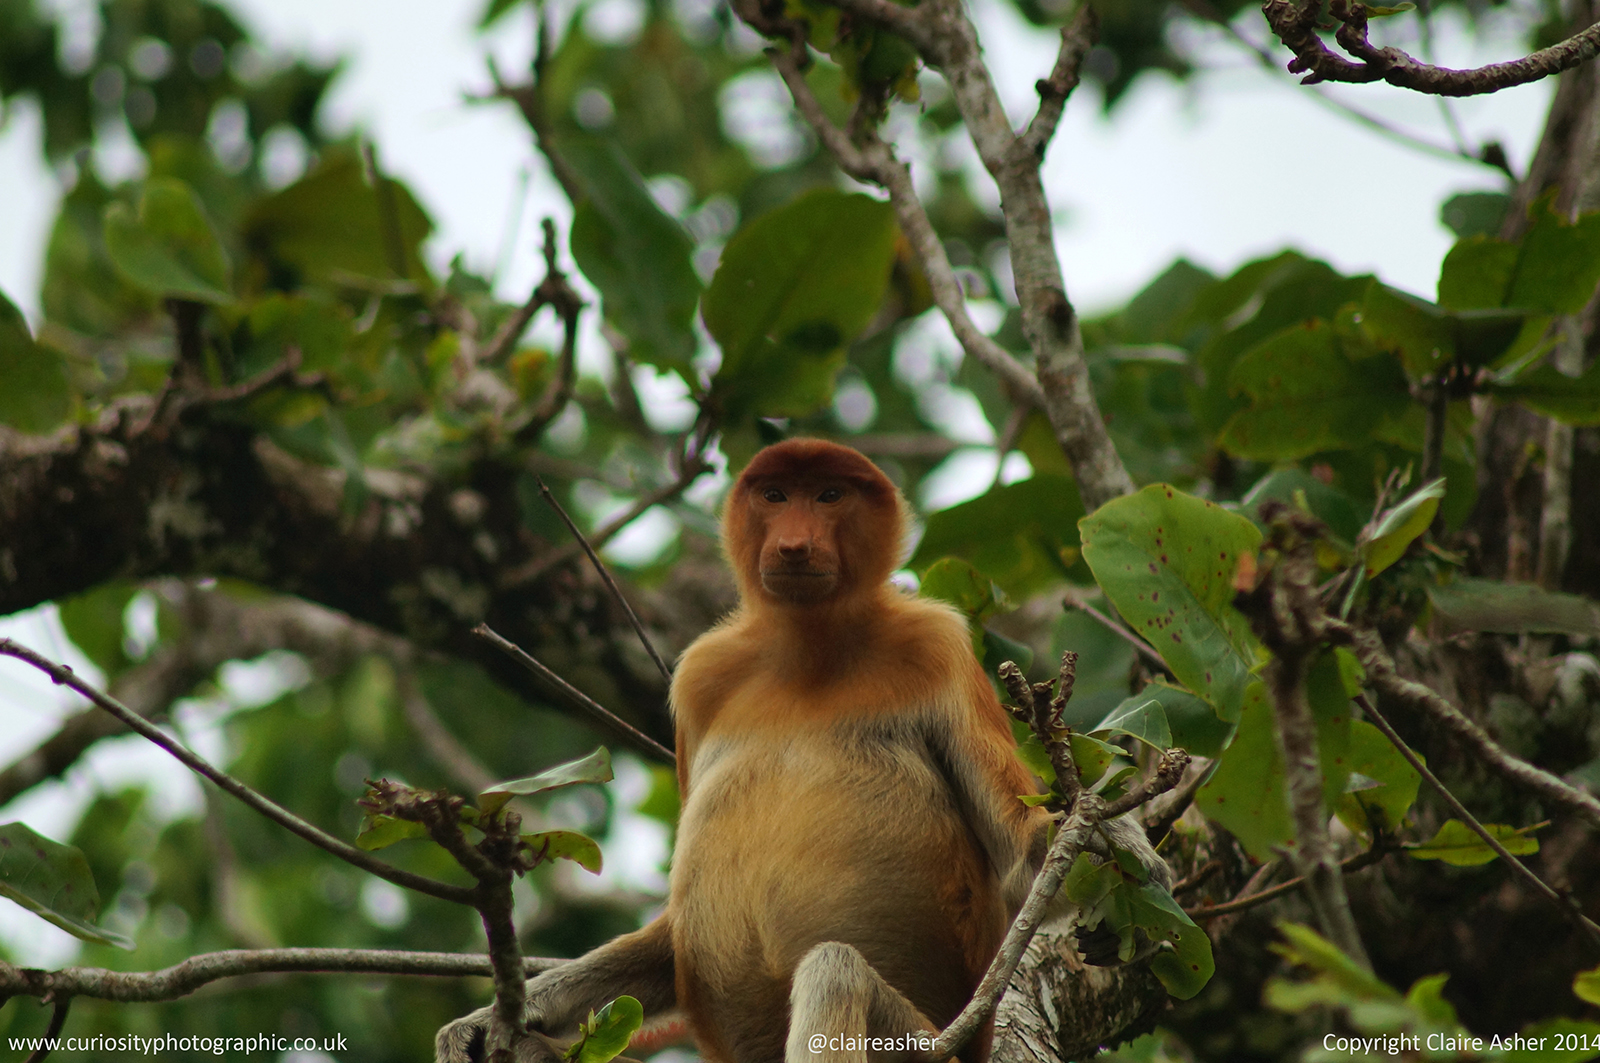 A female Proboscis monkey (Nasalis larvatus), photographed in Borneo, Malaysia in 2014.